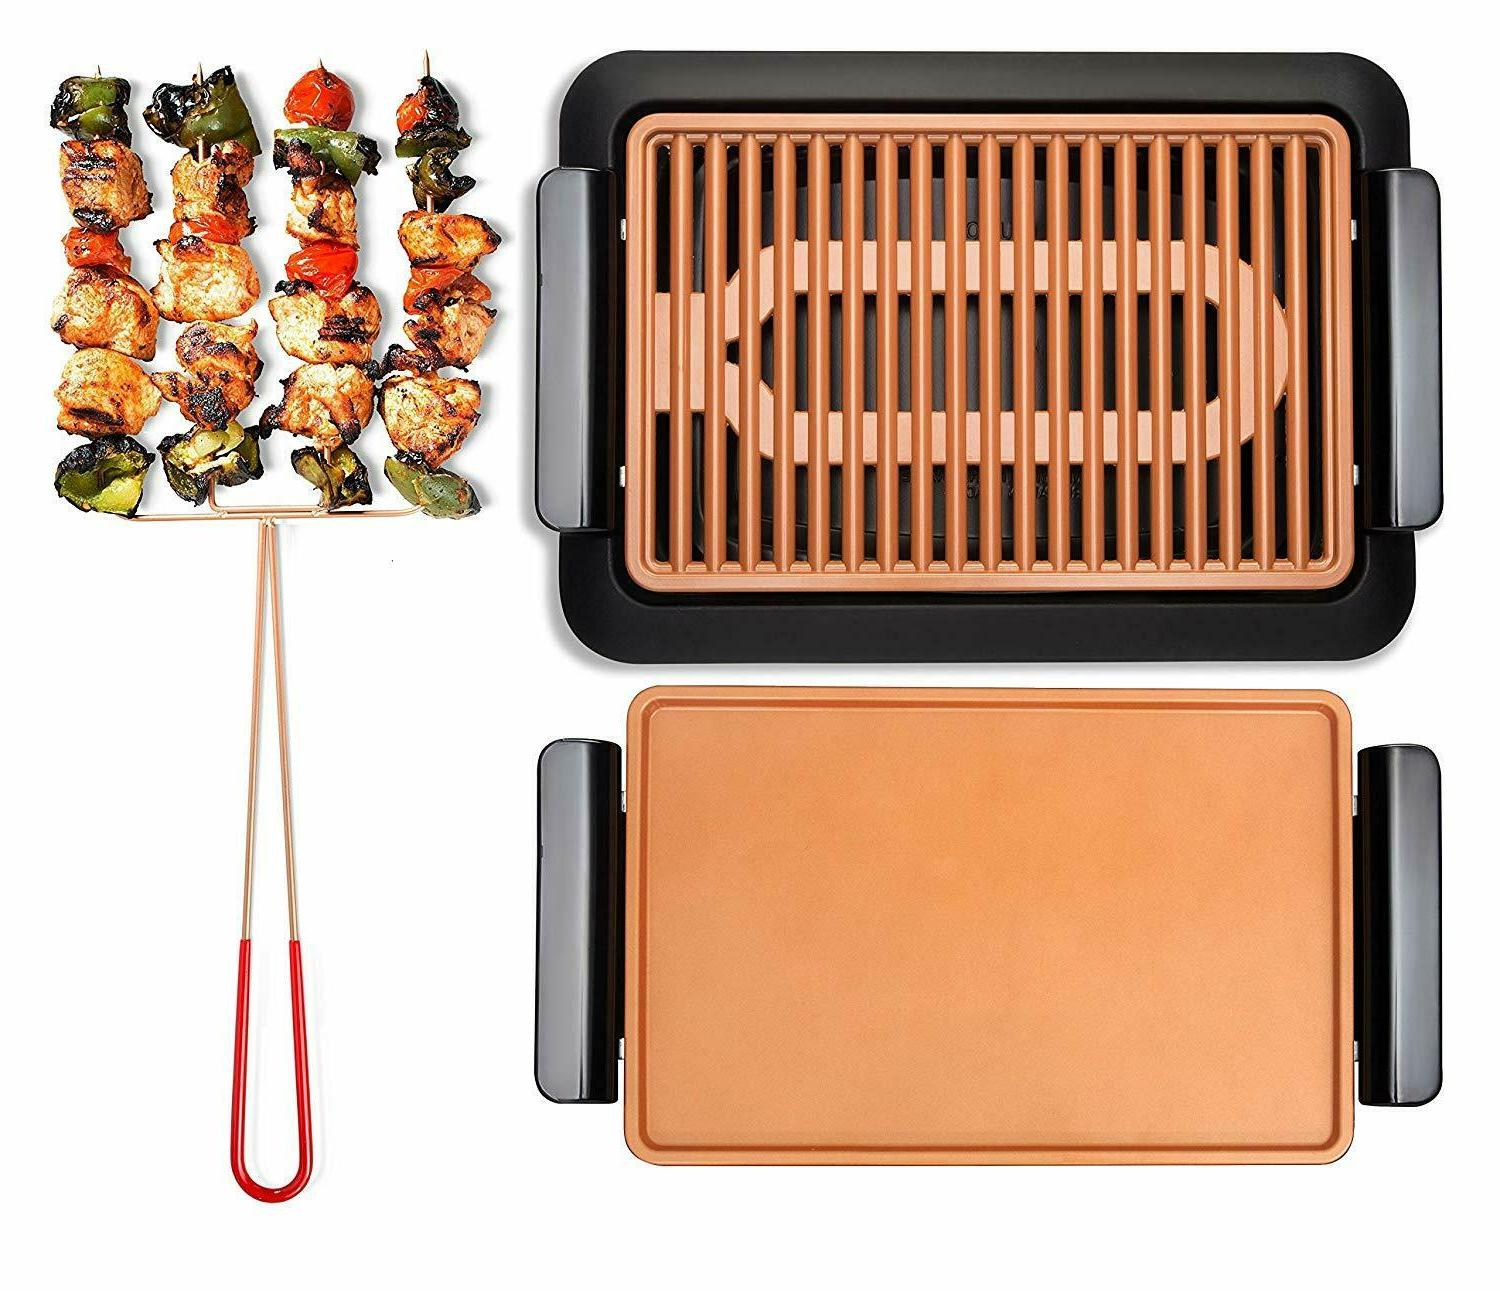 steel smokeless electric indoor barbeque grill griddle